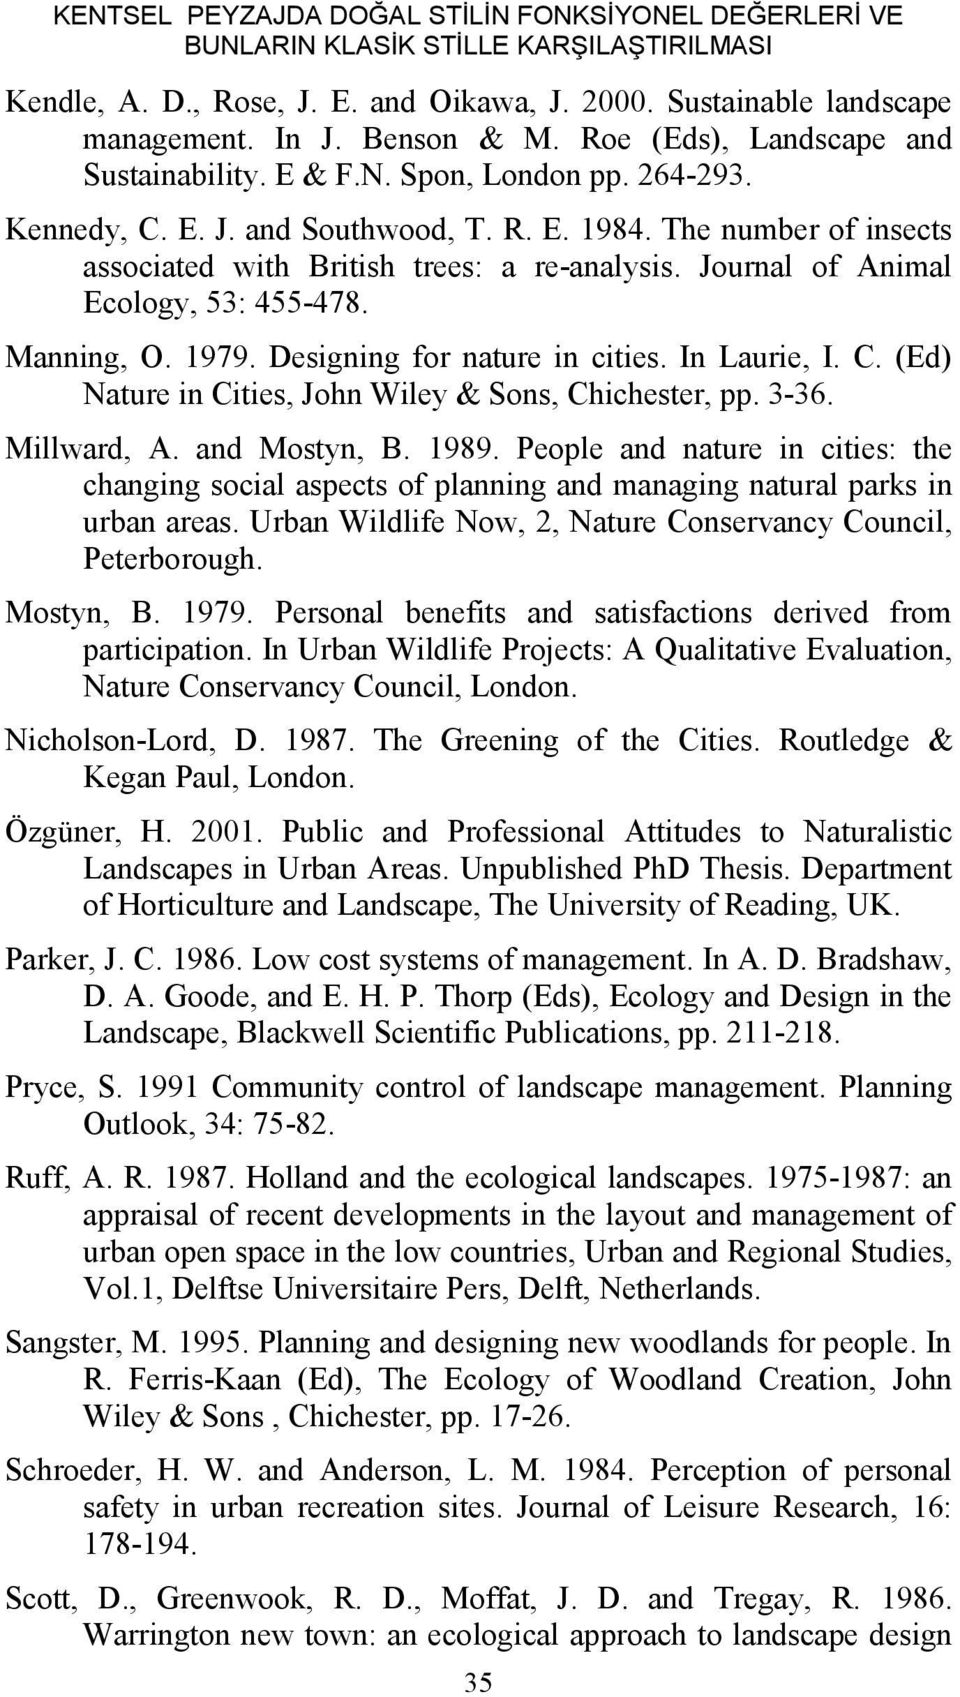 Journal of Animal Ecology, 53: 455-478. Manning, O. 1979. Designing for nature in cities. In Laurie, I. C. (Ed) Nature in Cities, John Wiley & Sons, Chichester, pp. 3-36. Millward, A. and Mostyn, B.